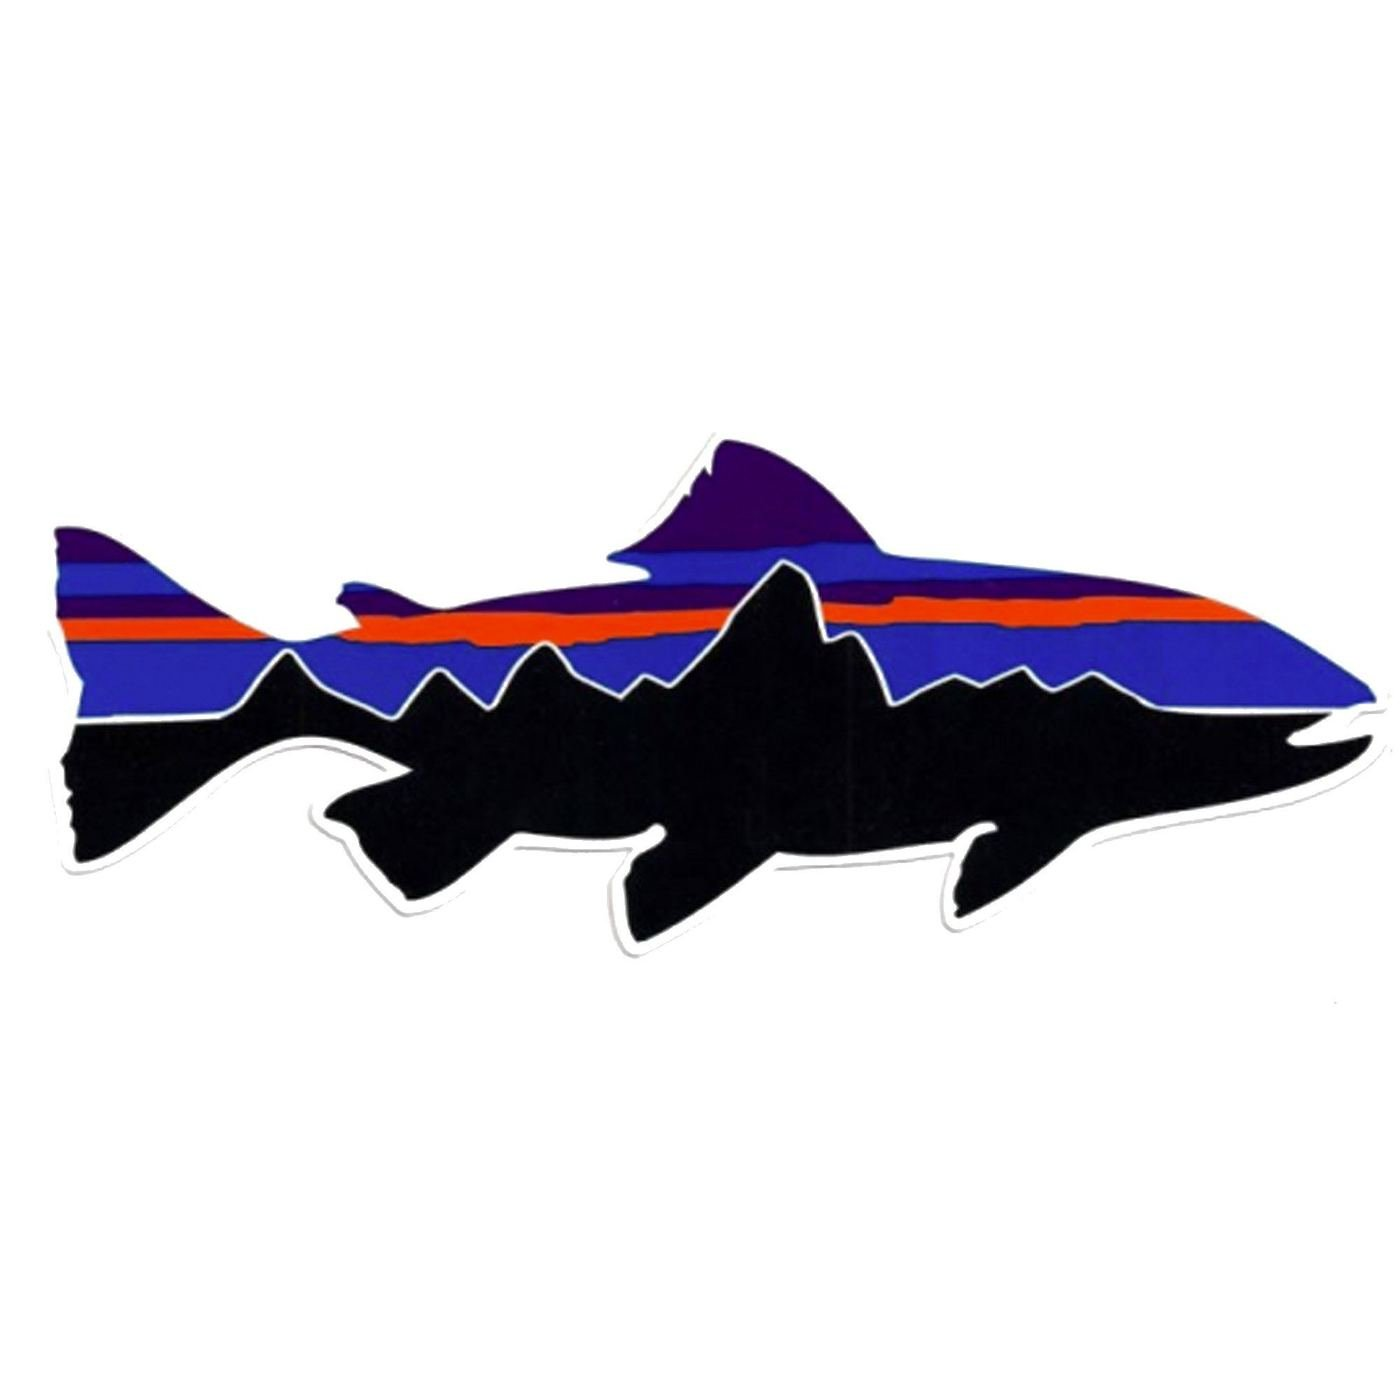 7x2 Percichthys trucha Patagonia Monte Fitz Roy Fish Perca Trucha - funny stickers travel adventure awaits wanderlust symbol window mountain motorcycle biker car Made and shipped in USA ExpressDecor